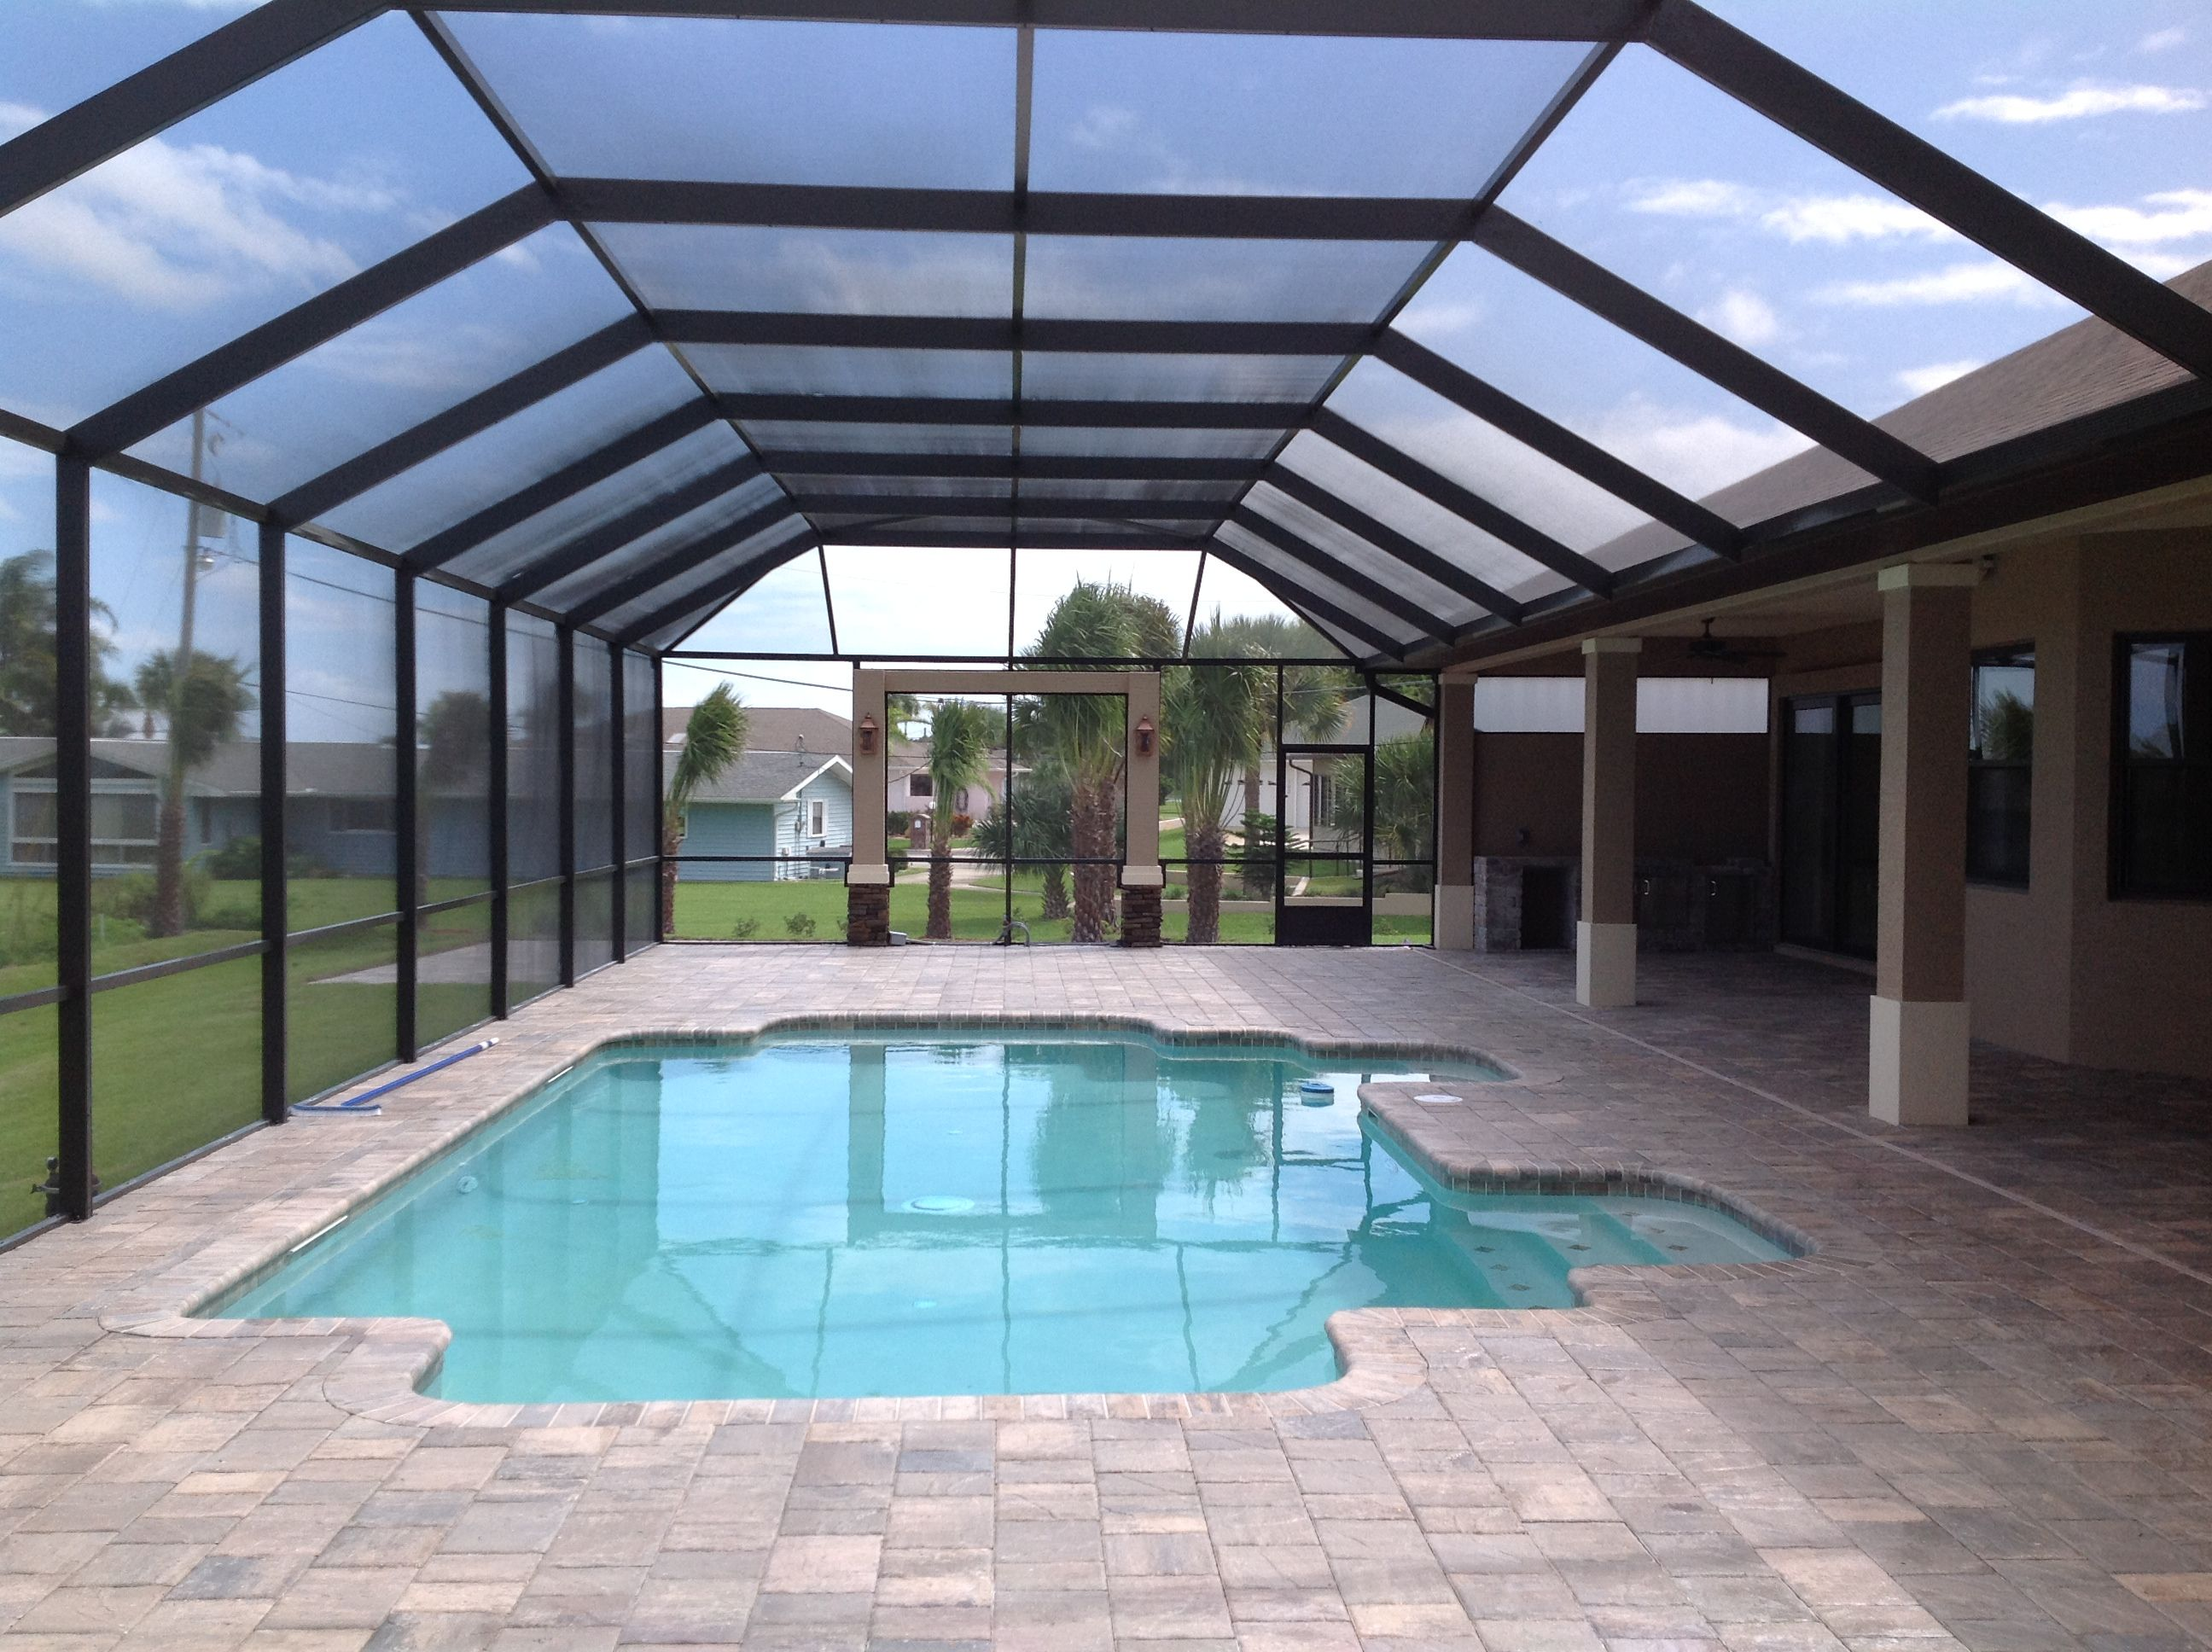 Screen rooms west palm beach fl we build sun rooms screen for Lanai deck